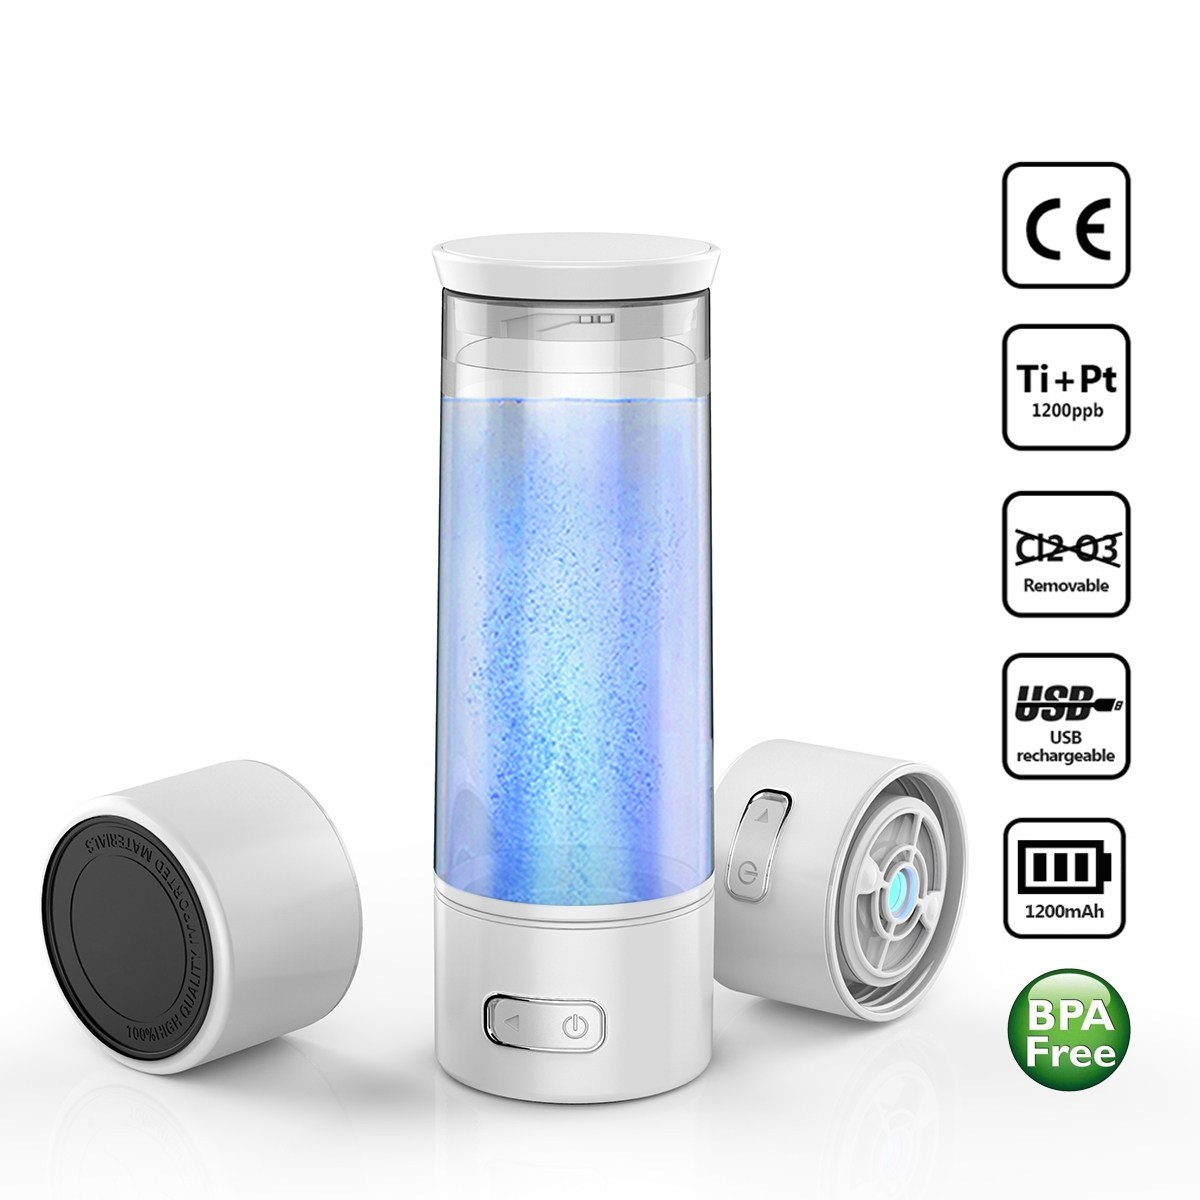 USB Rechargable High-Rich Hydrogen Water Bottle Ionizer Maker Generator Hydrogen Oxygen Separation Alkaline Energy Cup Filter usb charging hydrogen rich water bottle 5 min electrolysis hydrogen water generator water lonizer alkaline healthy energy cup